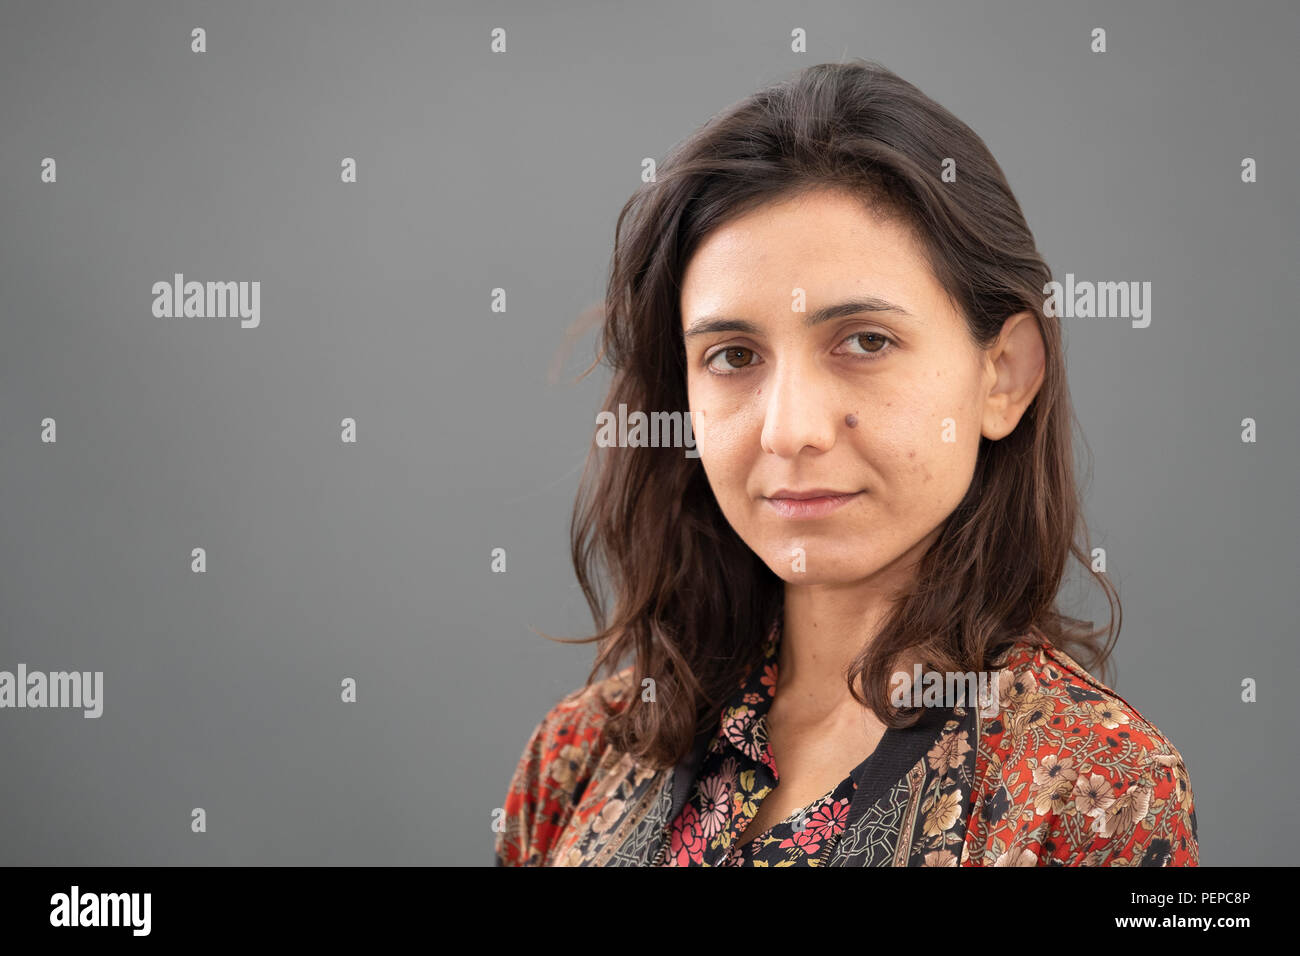 """Edinburgh, Scotland, UK; 17 August, 2018. Pictured; Author  Ottessa Moshfegh. Follows her Man Booker shortlisted novel with """"My Year of Rest and Relaxation"""" a blackly comical tale of drug-fuelled alienation in Manhattan shortly before 9/11. Credit: Iain Masterton/Alamy Live News Stock Photo"""